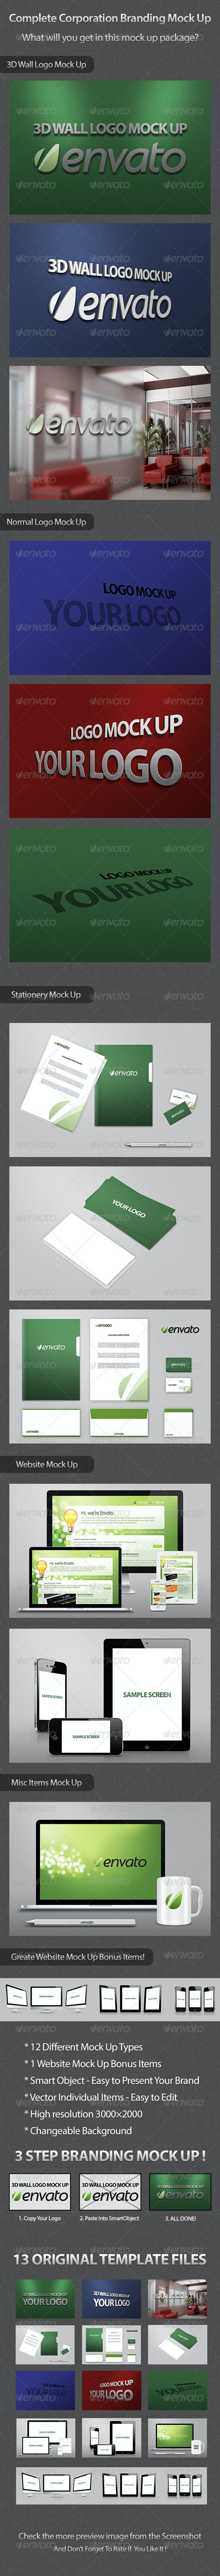 Complete Corporation Branding Mock Up - Stationery Print